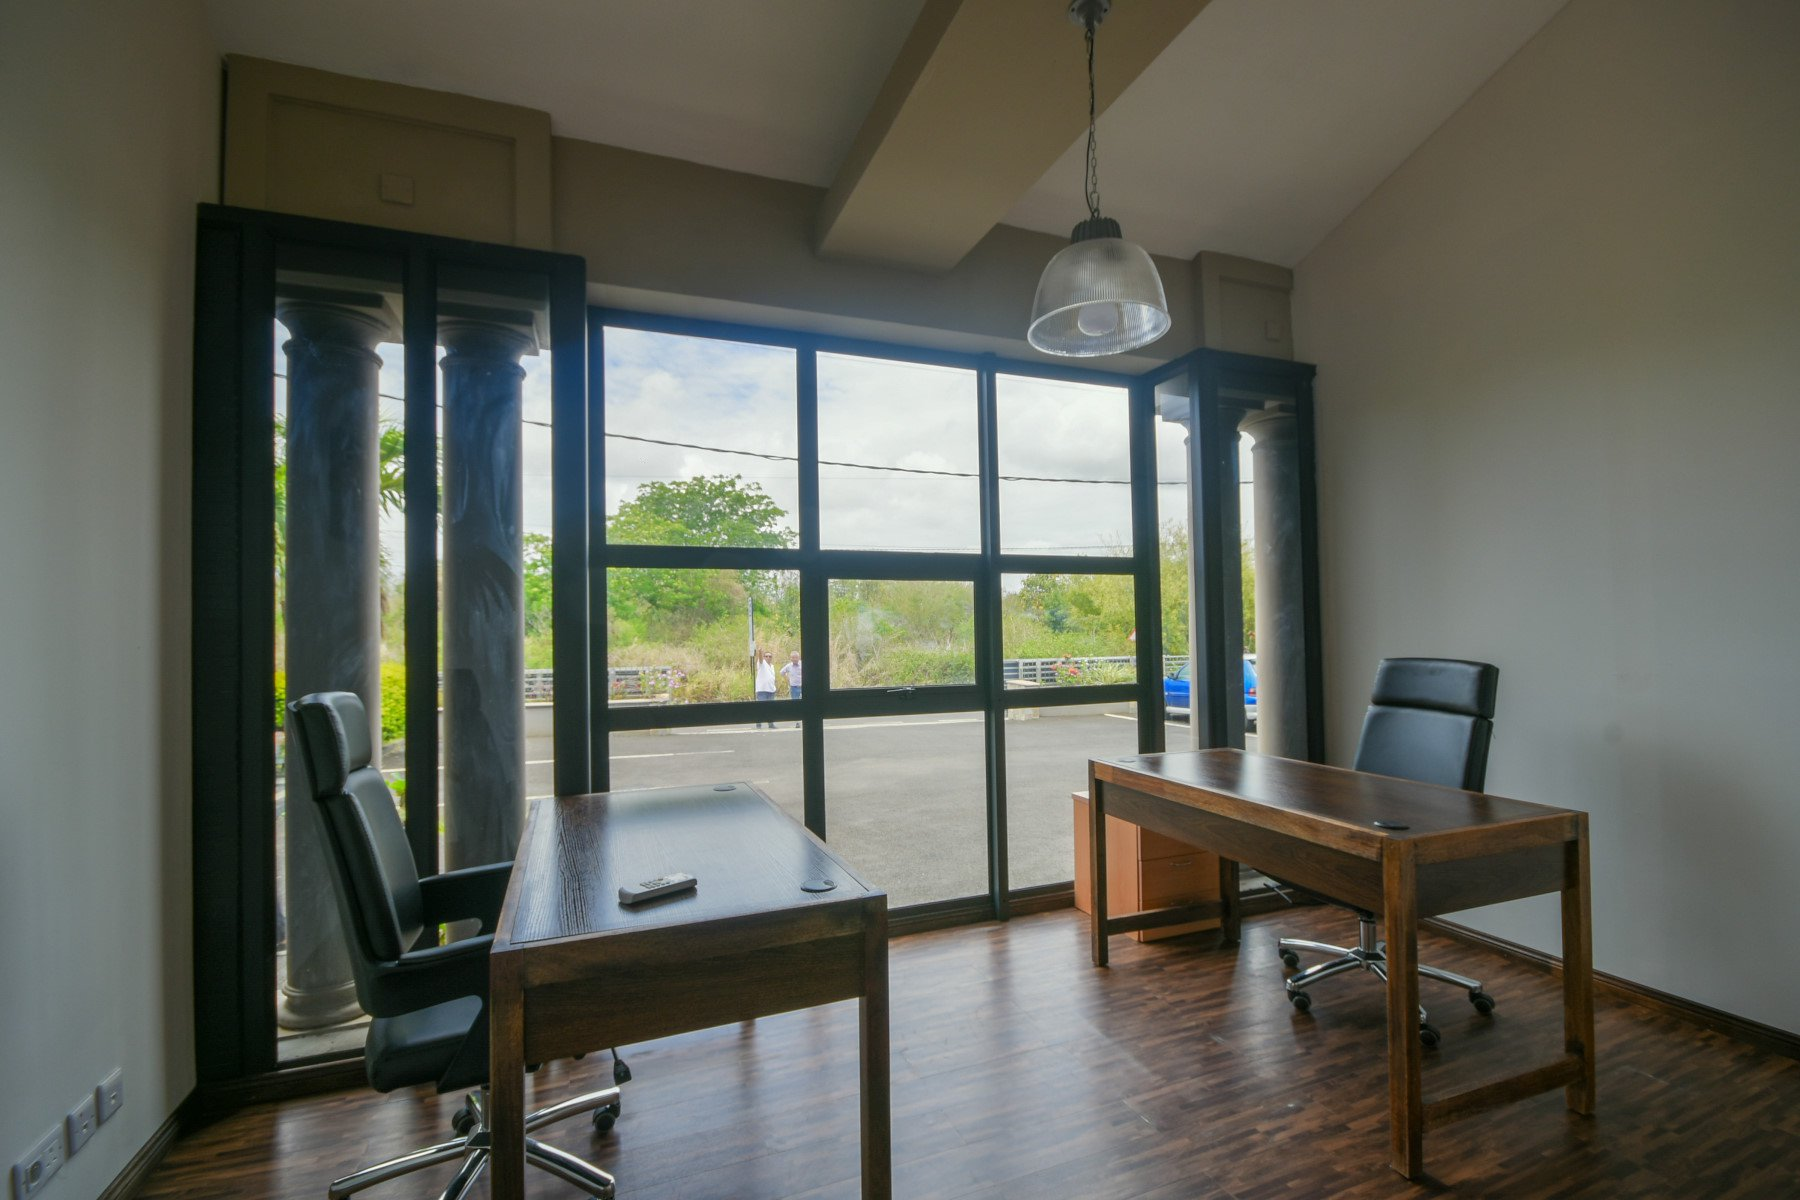 OFFICES 9 M2 TO 33 M2